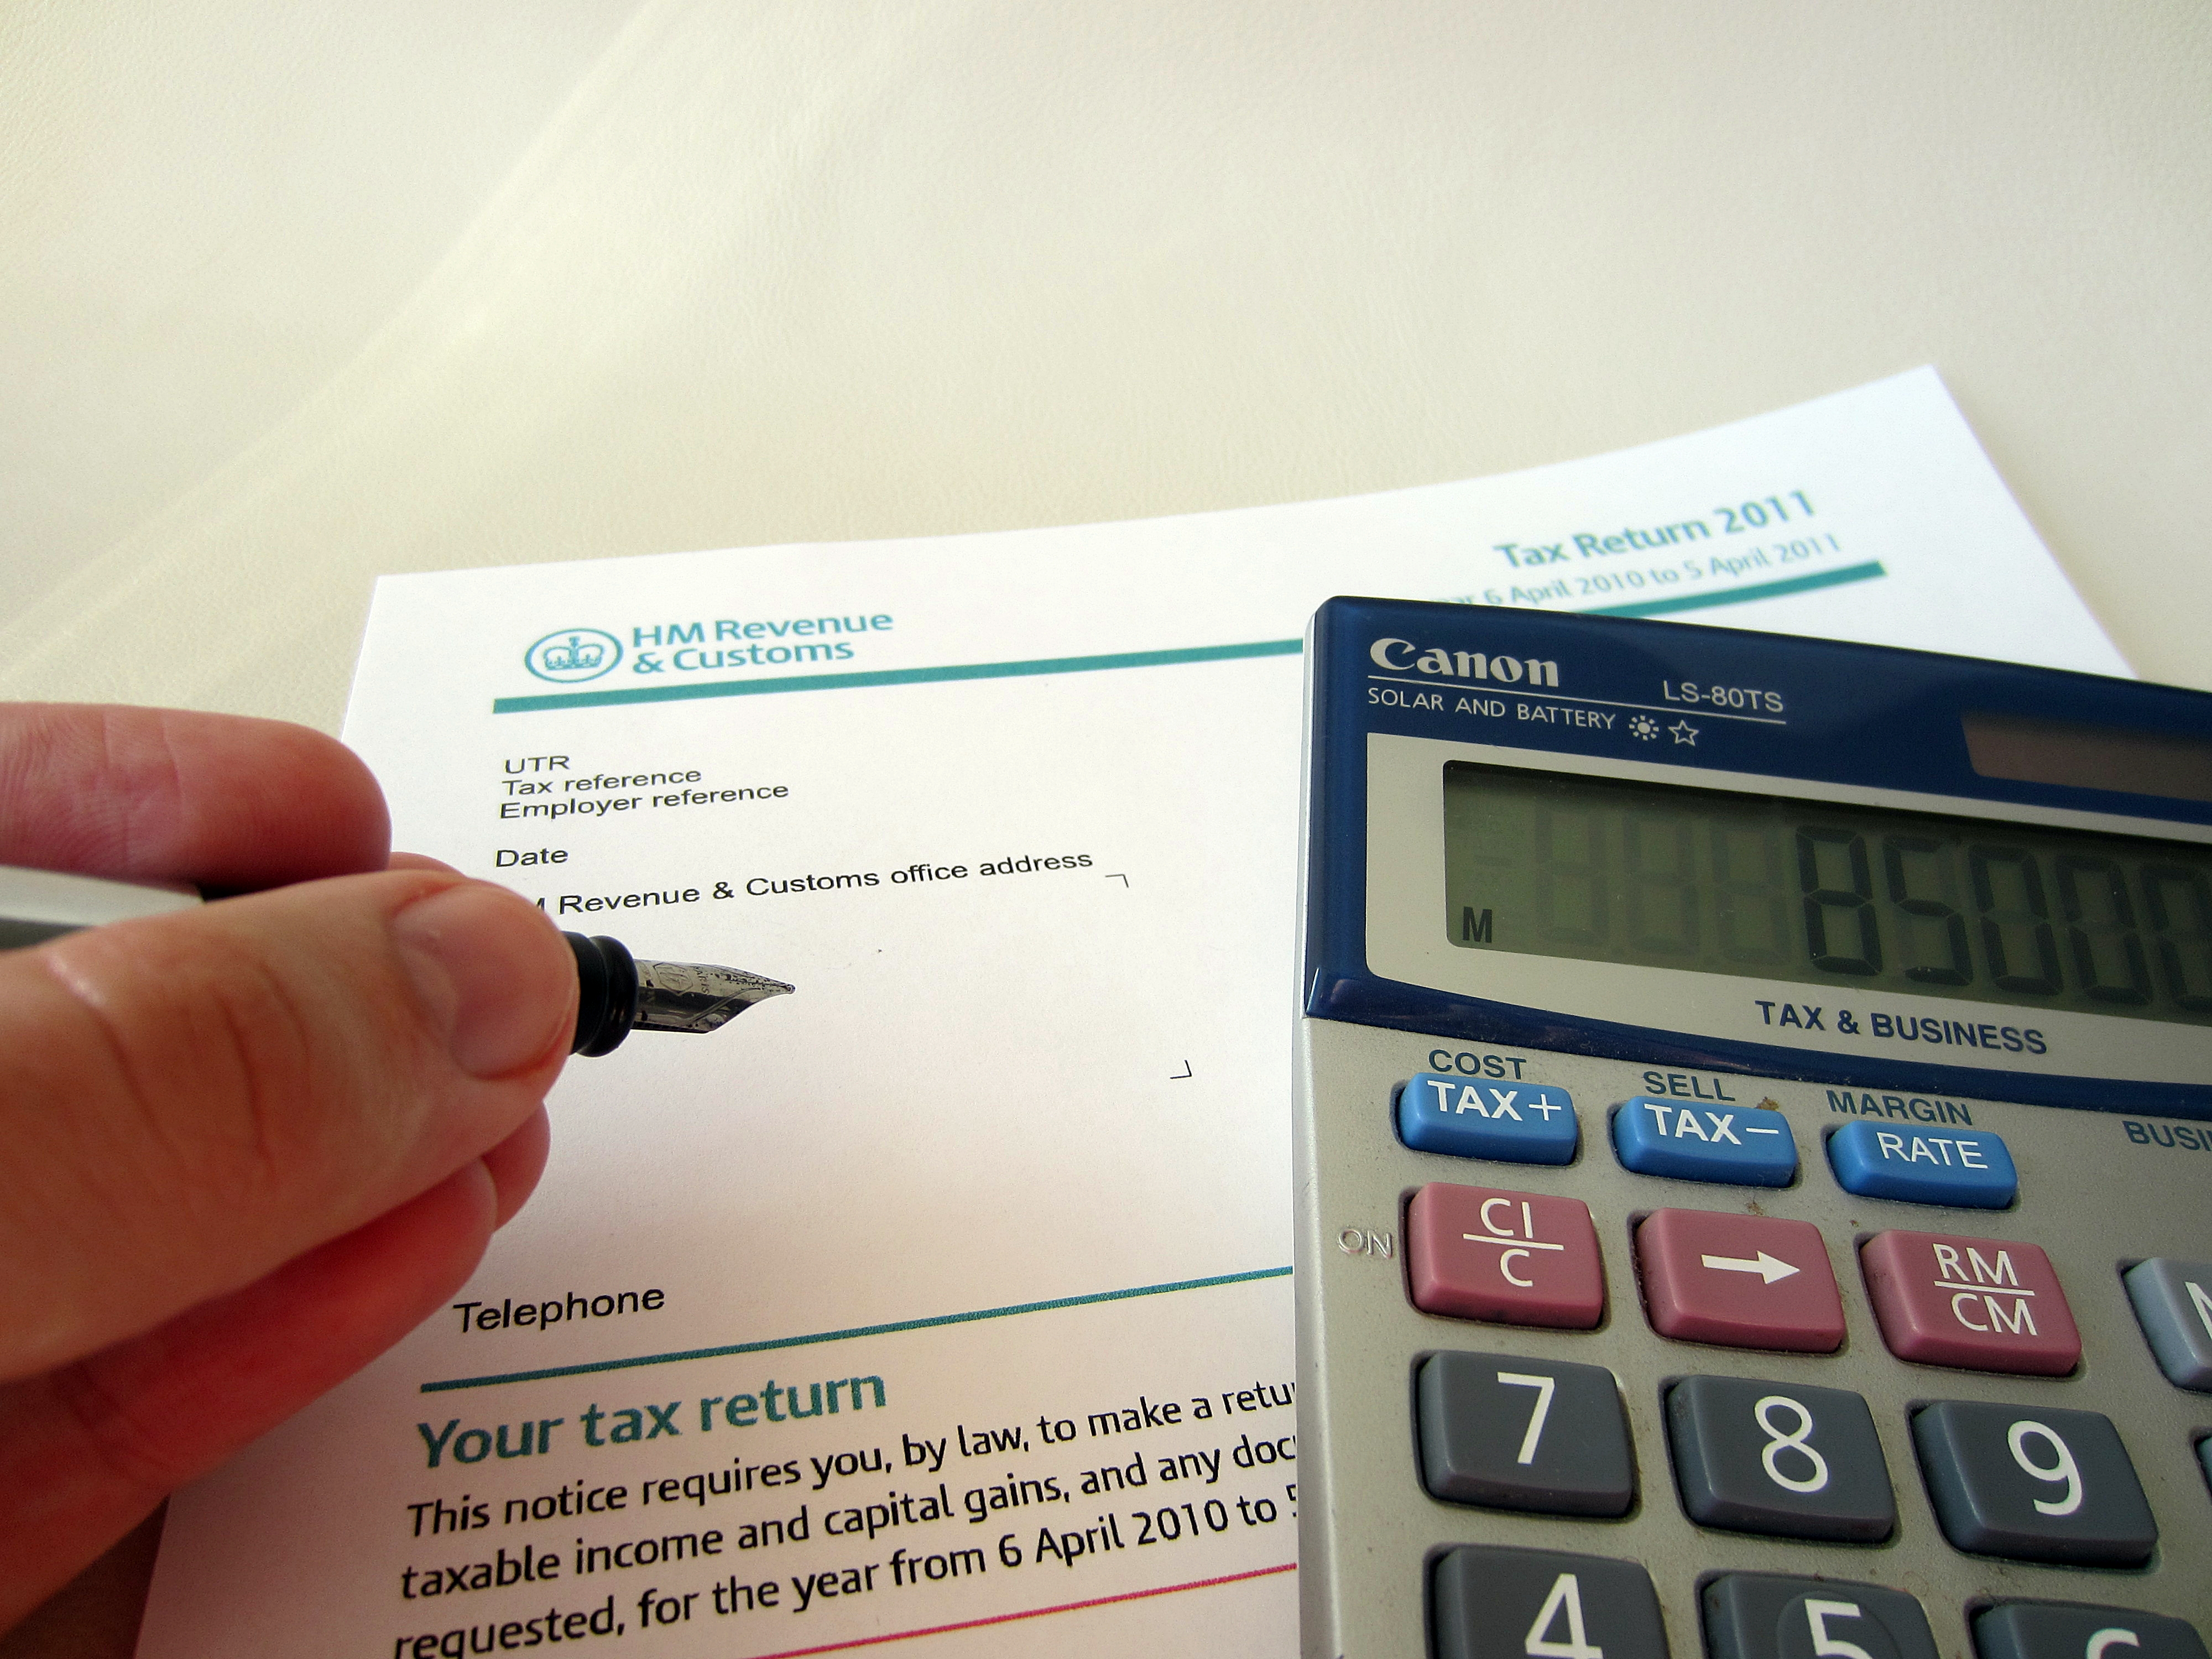 Small firms spend £500m per year on tax admin